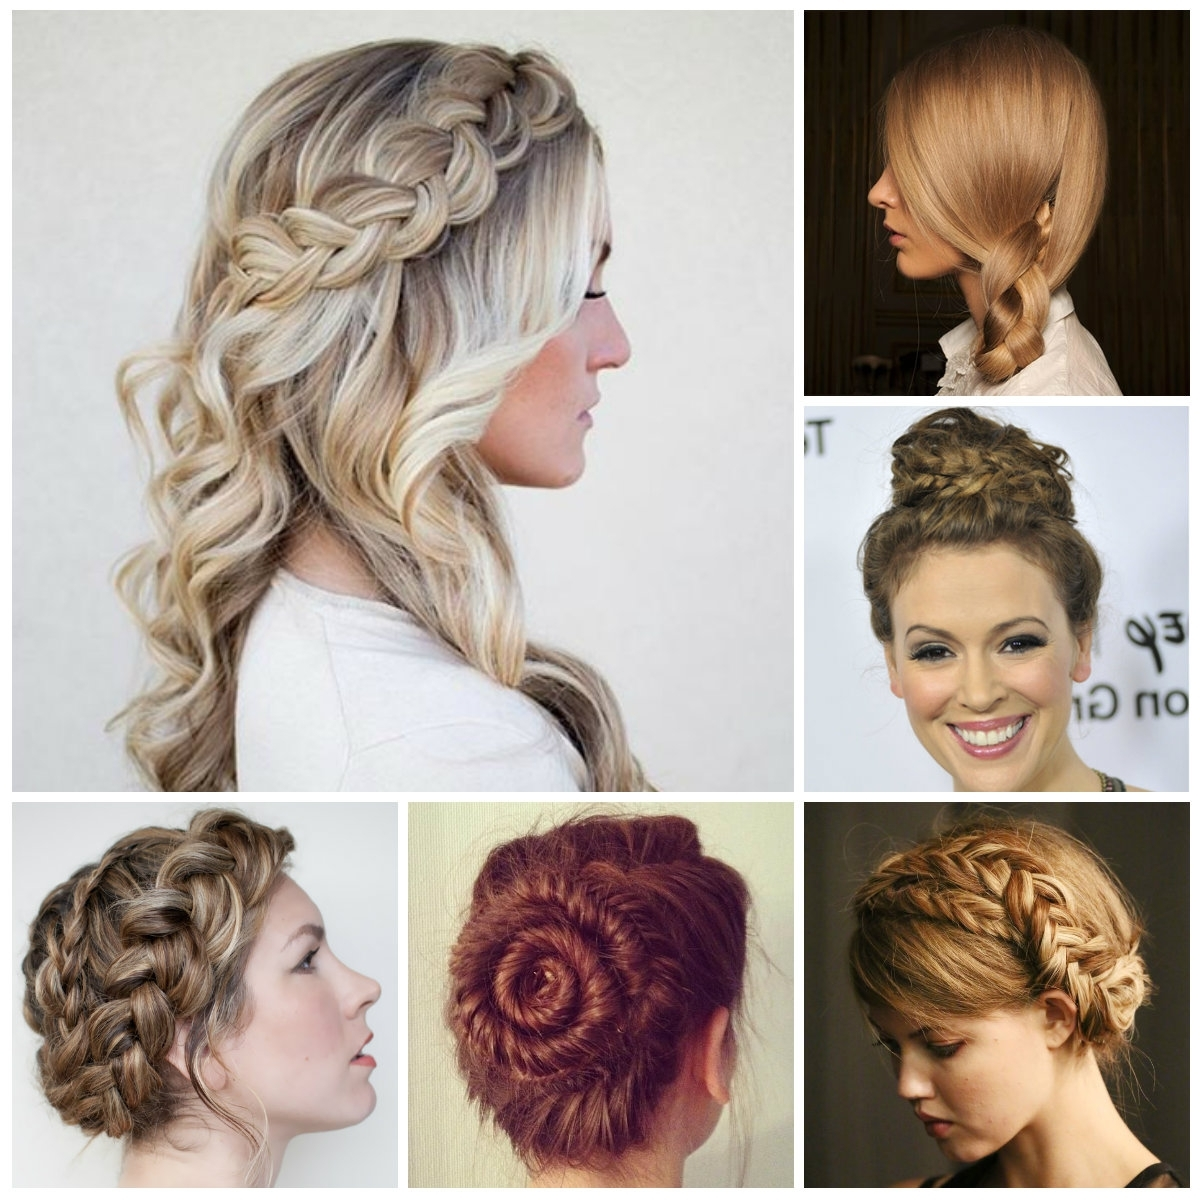 Updo Hairstyles : Easy Half Up Half Down Hairstyles For 2017 Image Regarding Updo Half Up Half Down Hairstyles (Gallery 10 of 15)